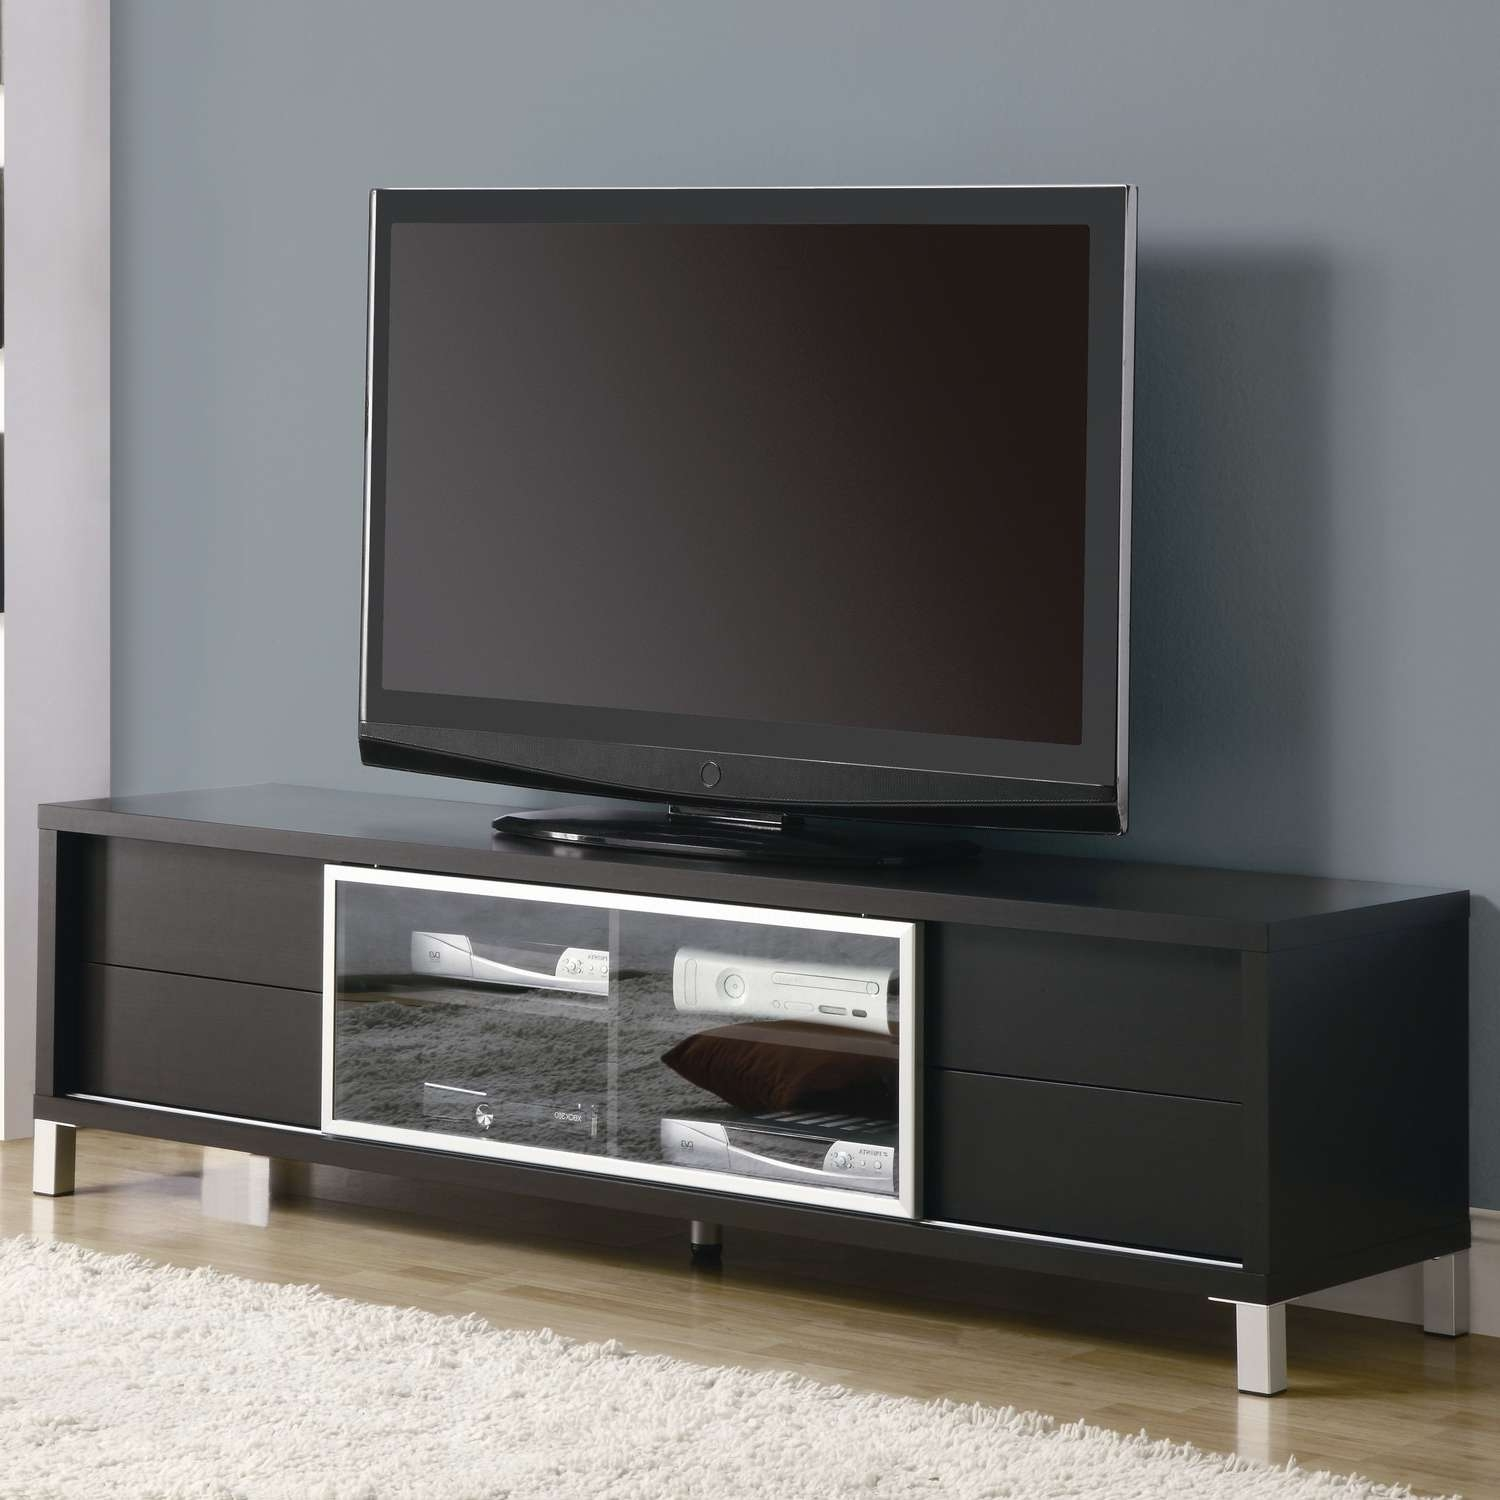 Simple Black Led Tv Right For Unusual Tv Stands On Wood Floor With For Glass Front Tv Stands (View 15 of 20)